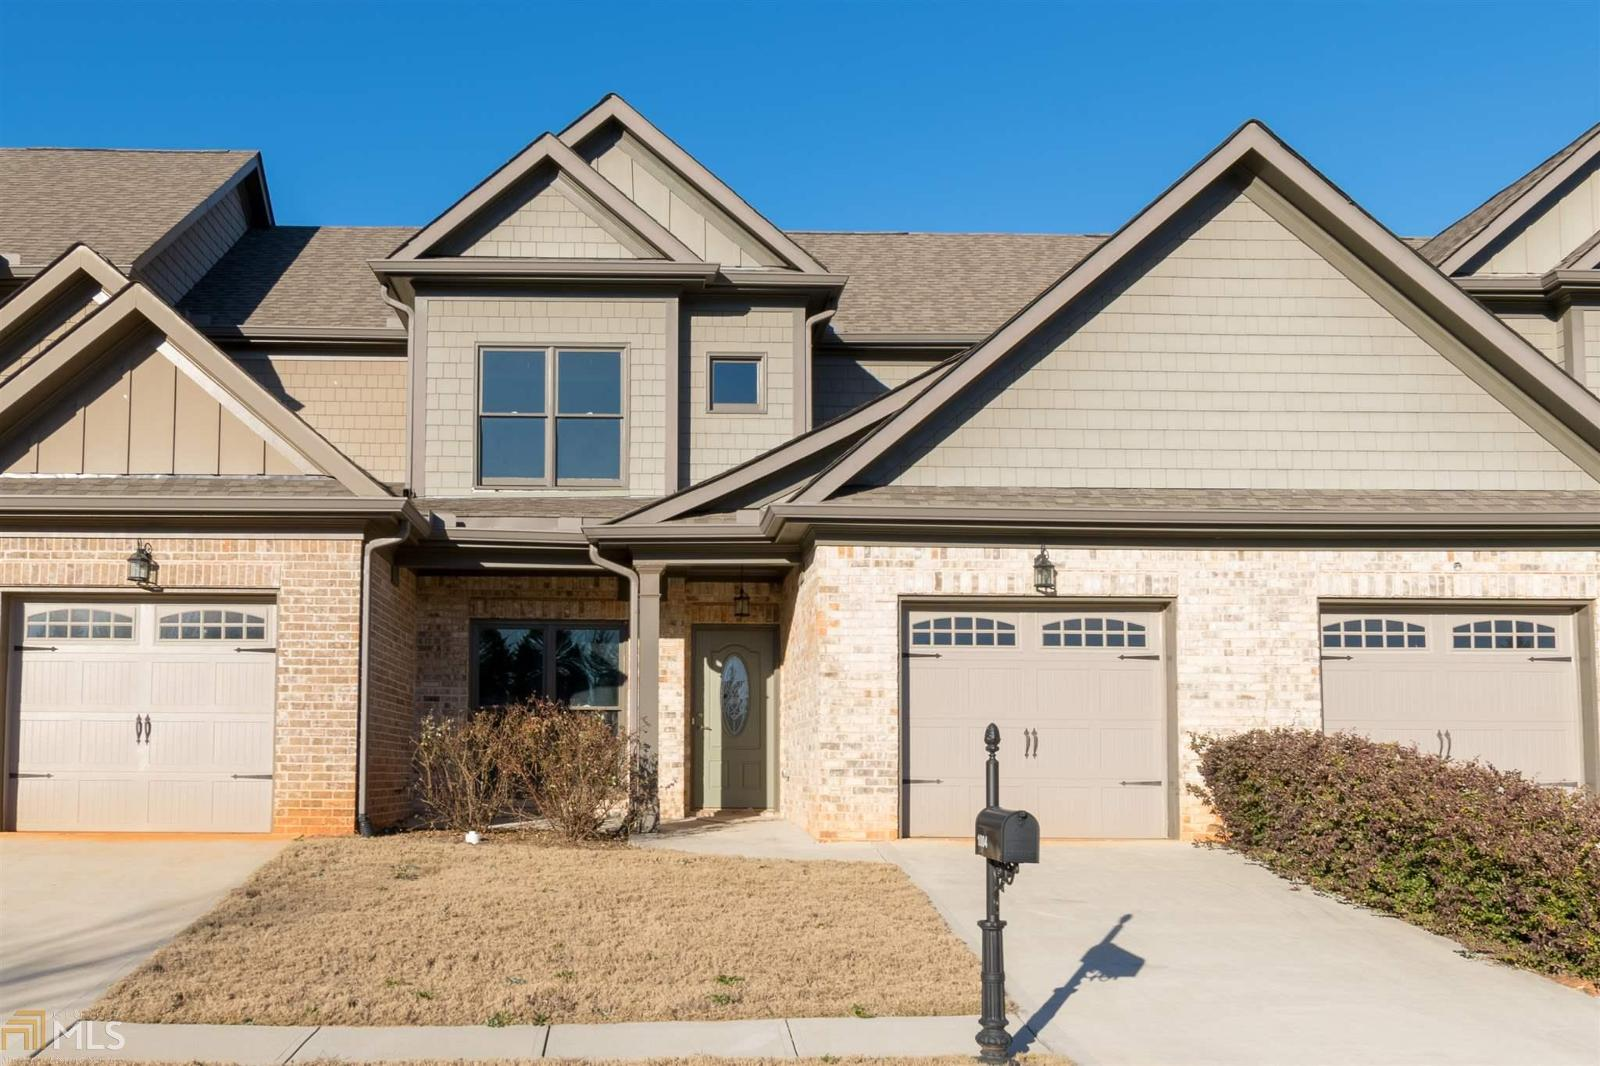 New Homes For Sale In Statham Ga